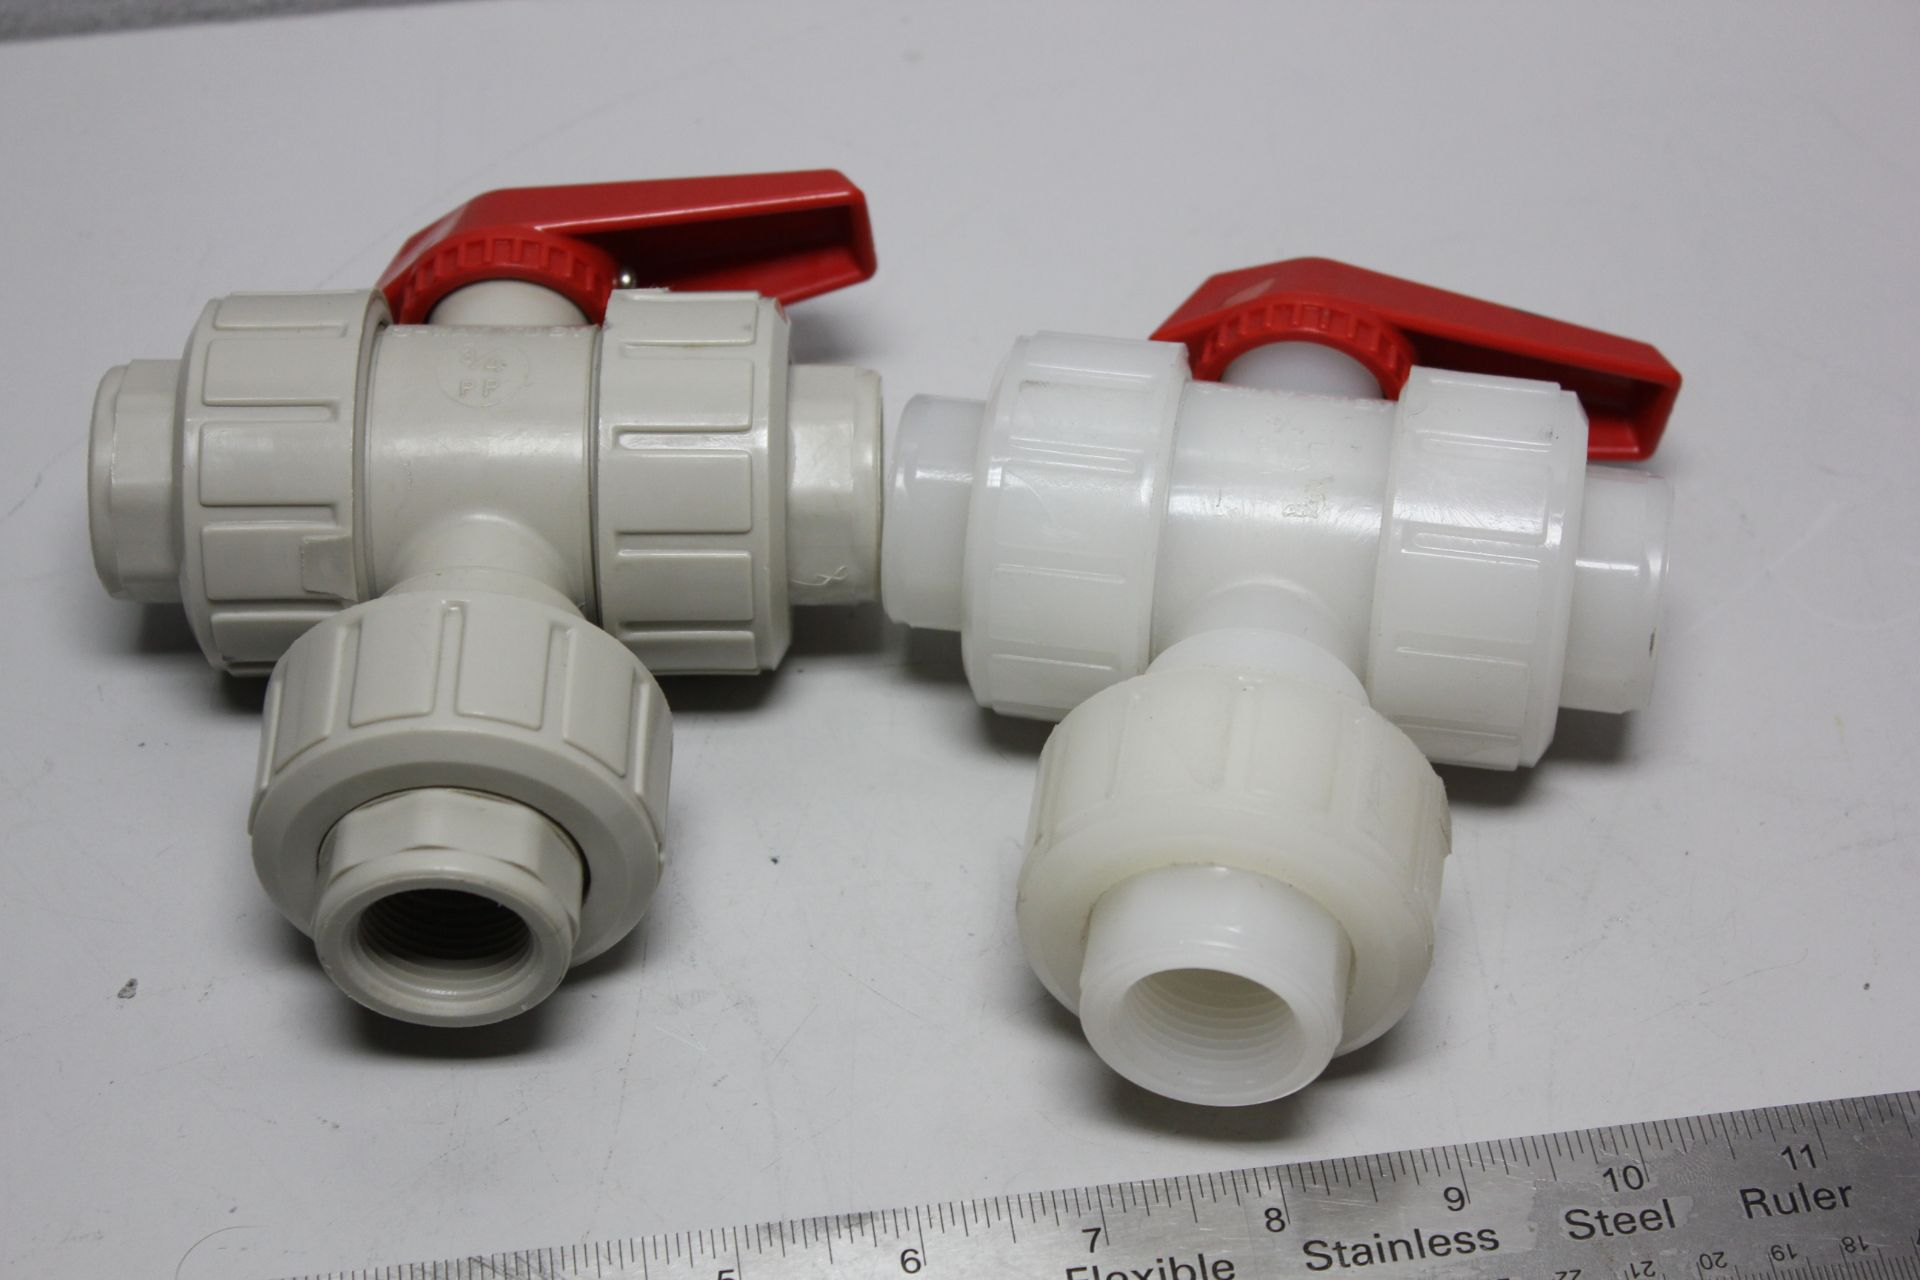 LOT OF UNUSED ASAHI BALL VALVES - Image 5 of 5